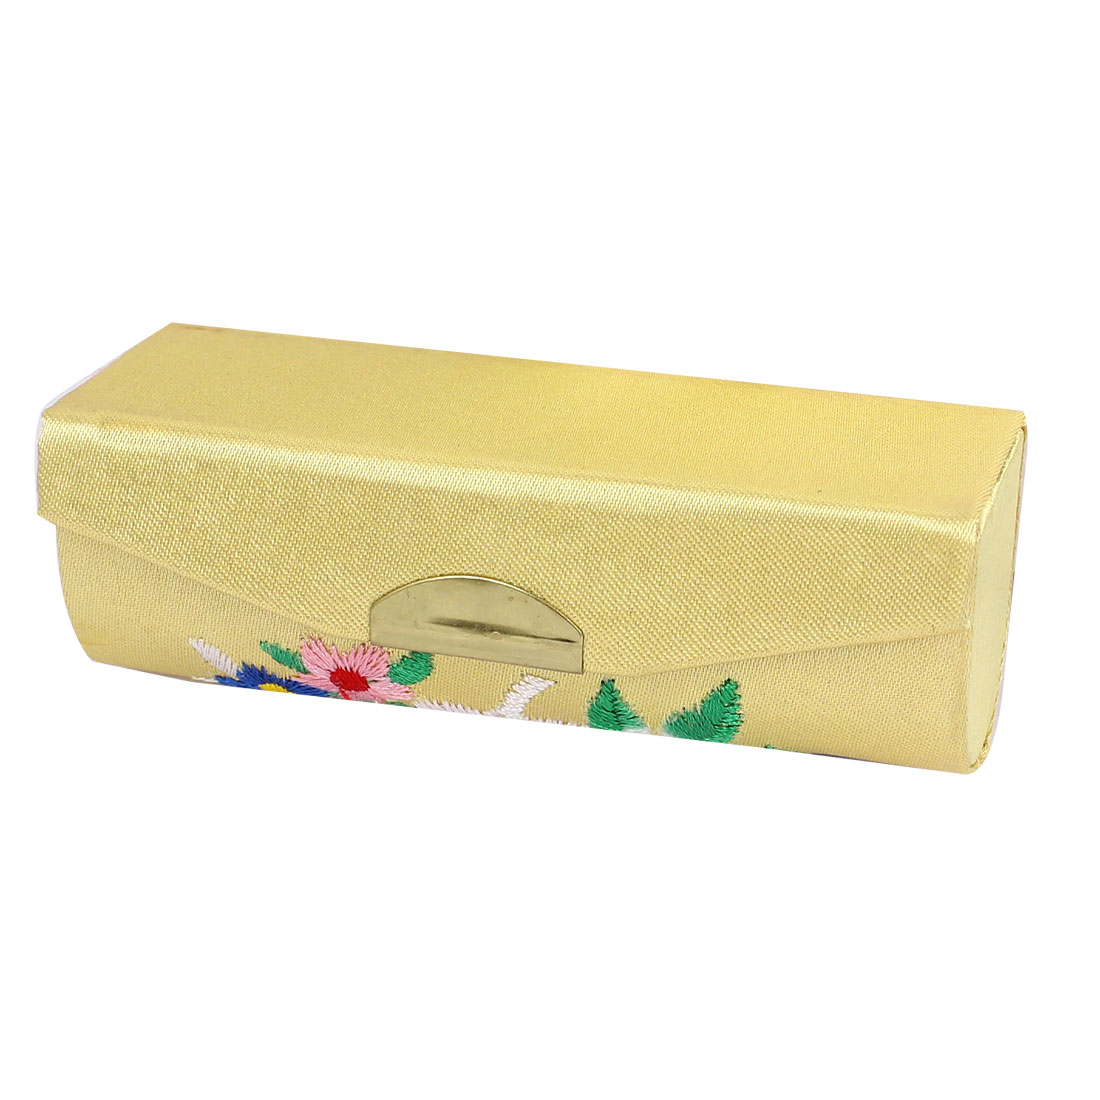 Chinese Style Floral Embroidered Yellow Lipstick Lip Chap Stick Case Holder Box w Rectangle Mirror